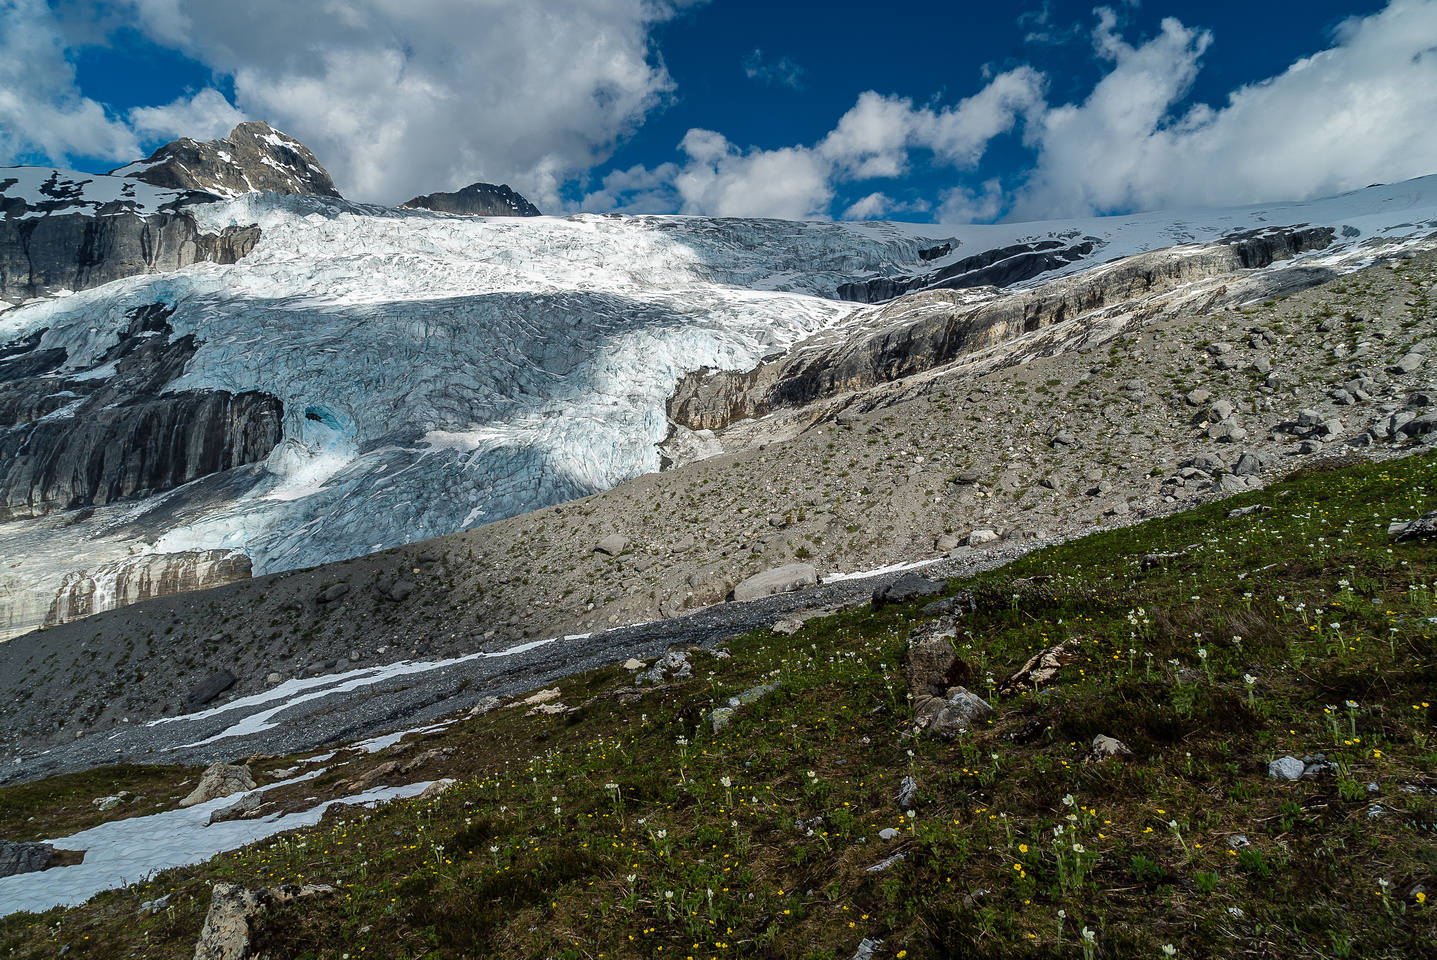 We approach a major terrain feature beneath the glacier - a large lateral moraine.